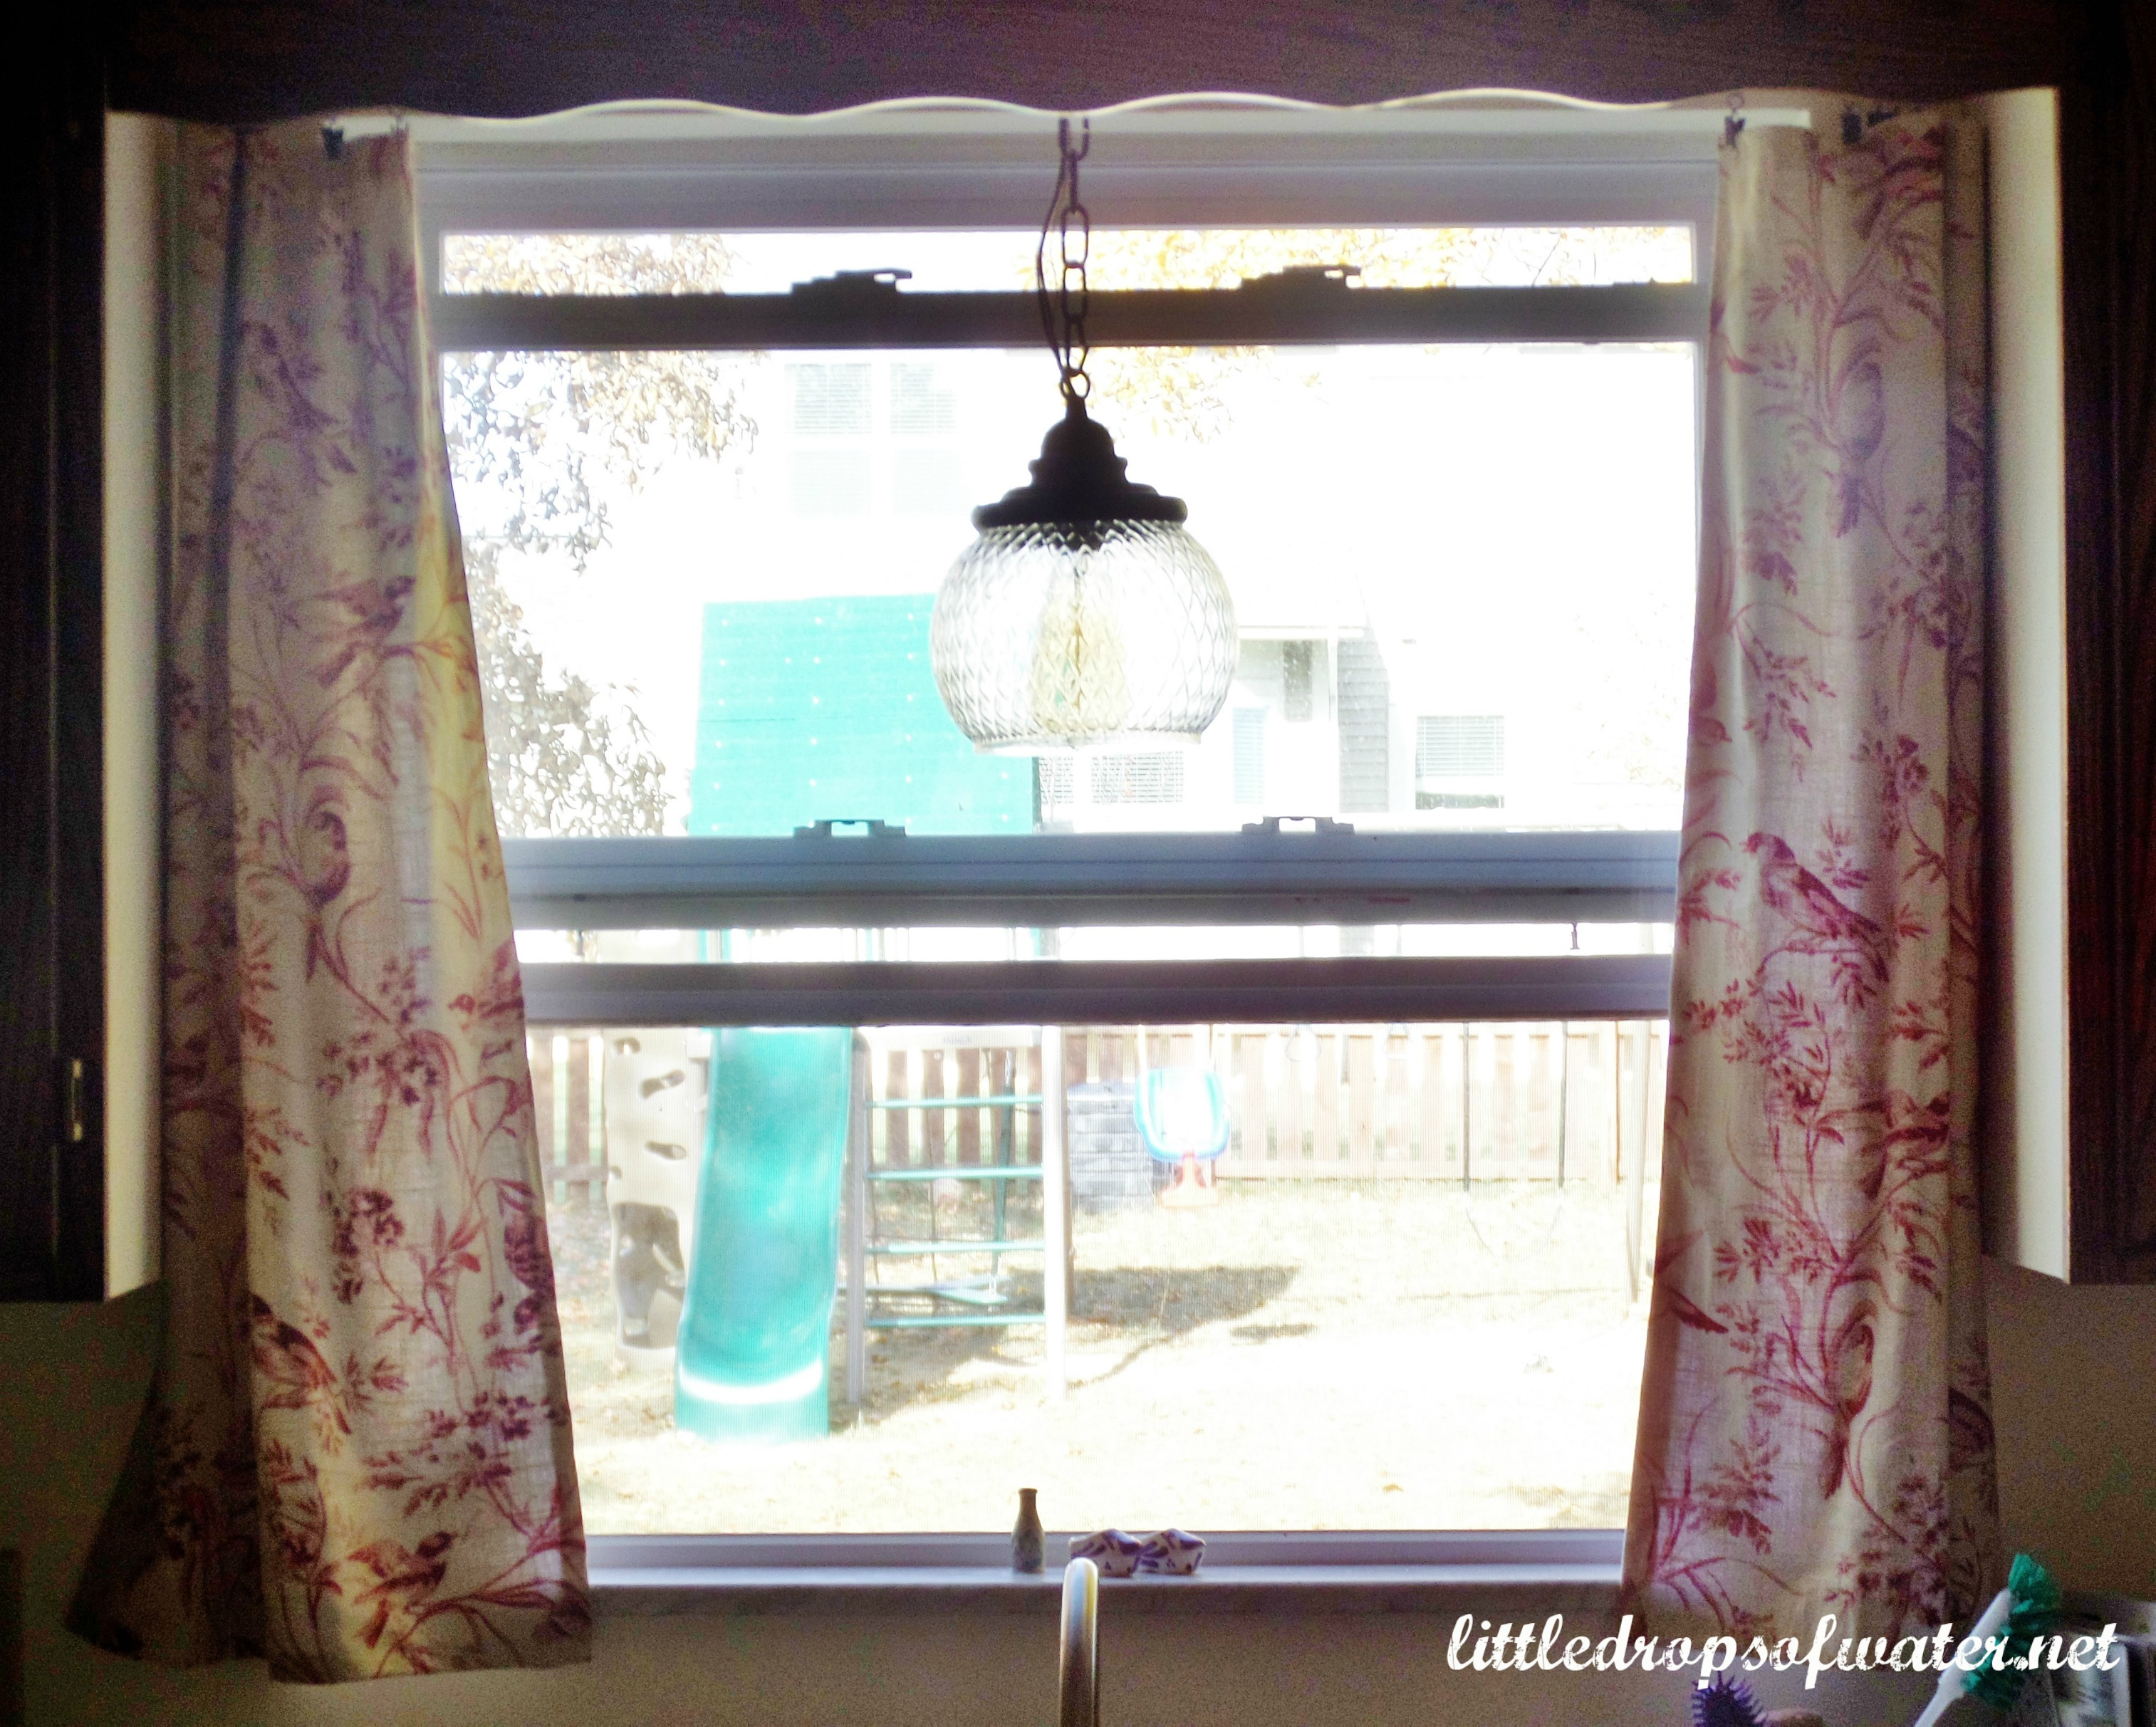 31 Days of Tackling the To-Do List: Kitchen Curtains